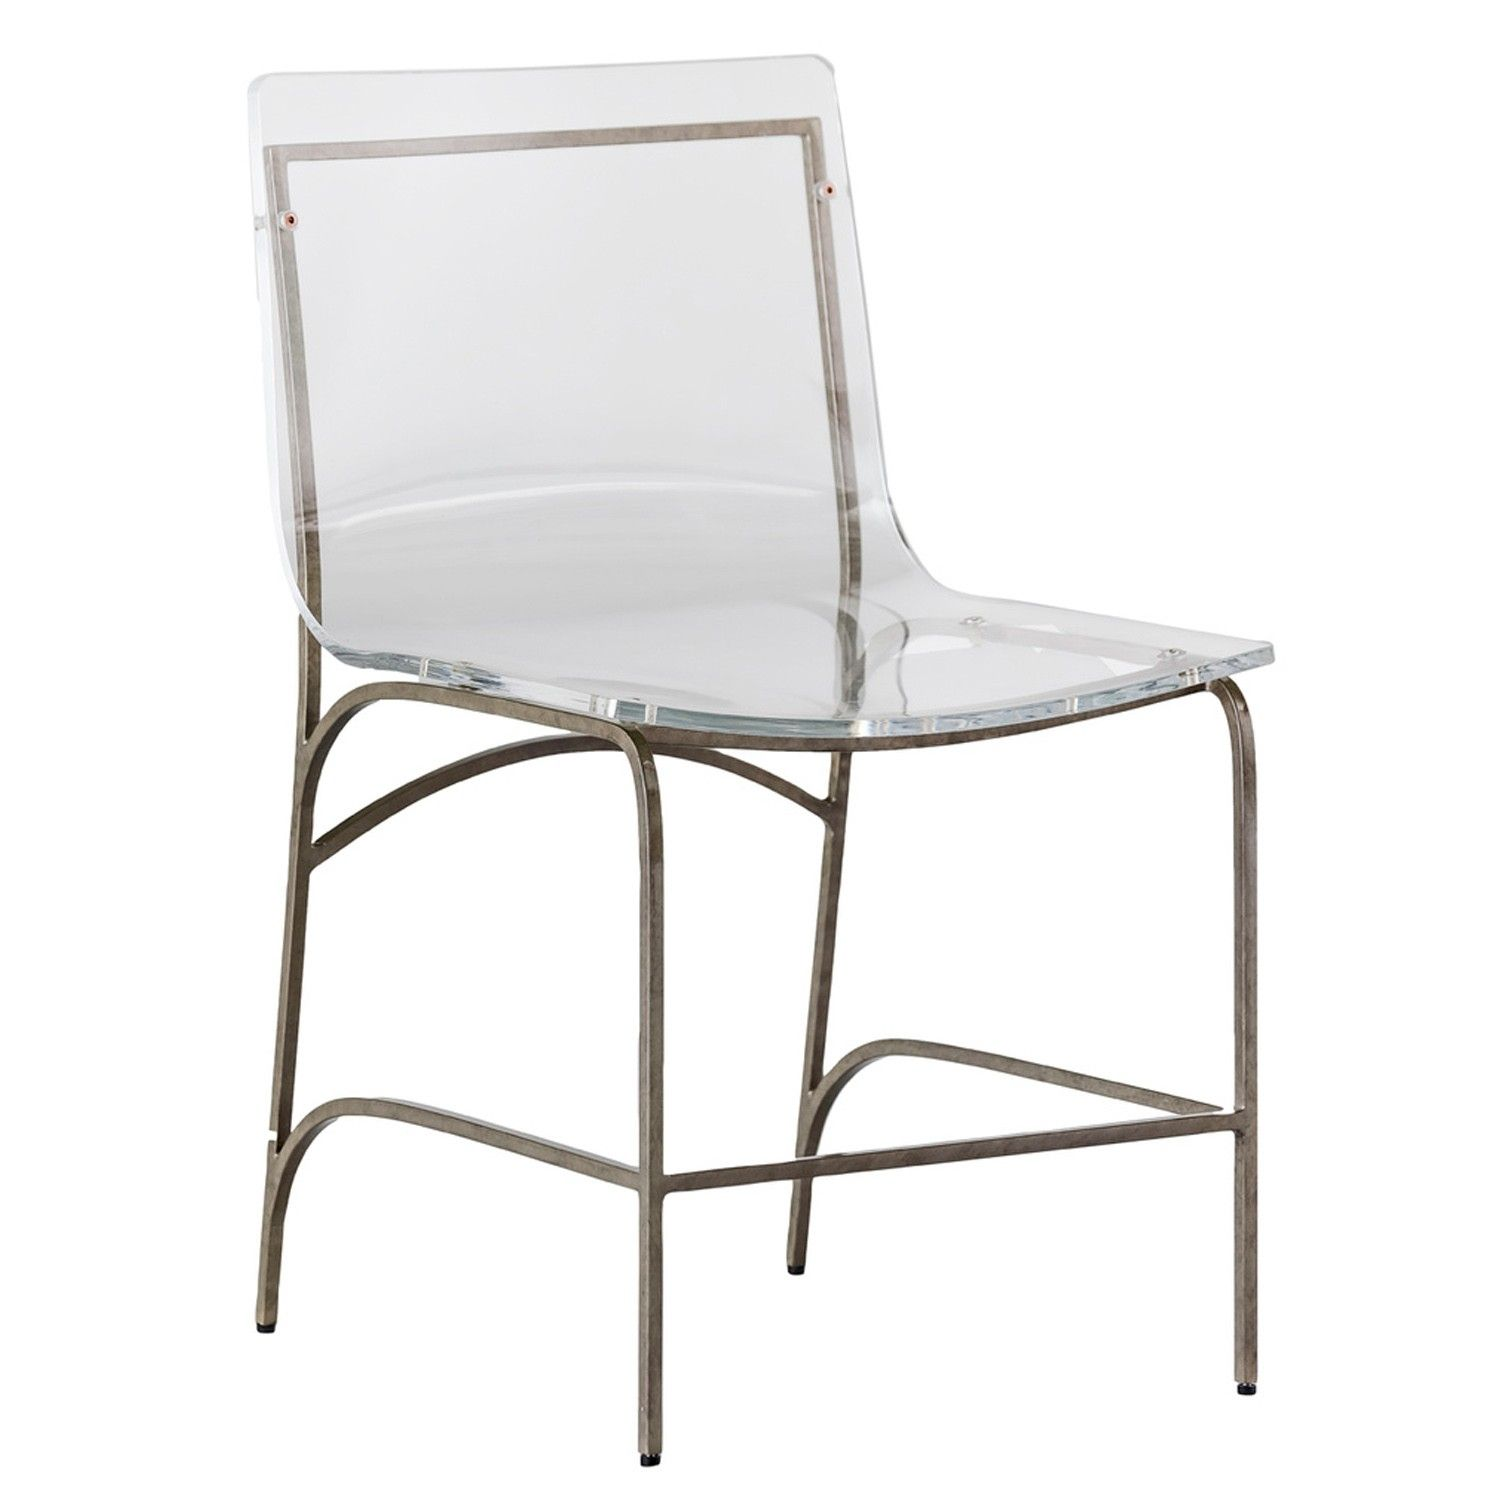 silver metal dining chairs wooden rocking chair mission style gabby penelope artesian pinterest the clear lucite and is a acrylic with an antique base that has subtle curve to